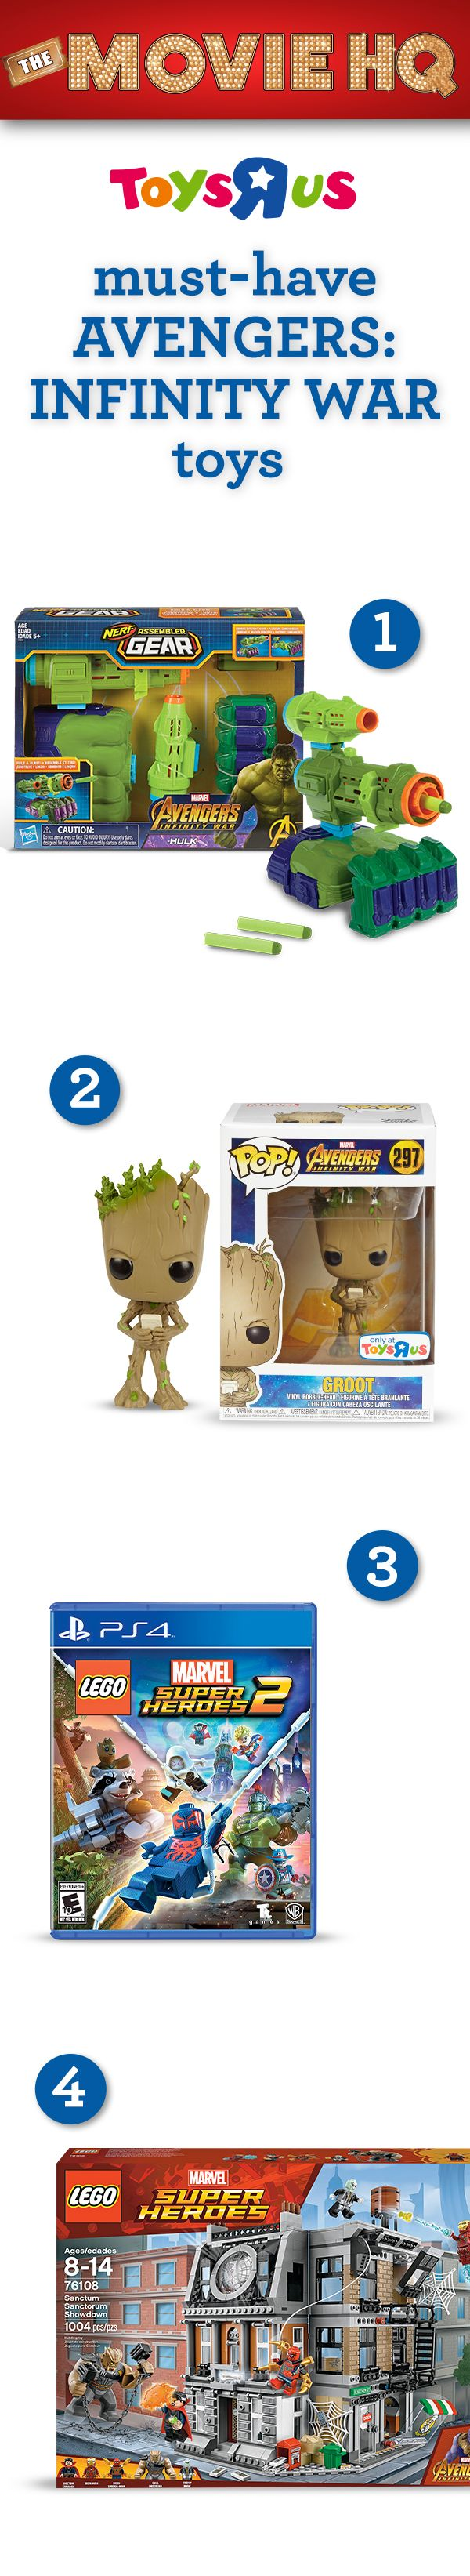 Looking for the coolest new toys from Marvel's Avengers: Infinity War? We've got suggestions that will save the world for your Marvel fan: 1. Marvel Avengers: Infinity War NERF Assembler Gear; 2. Exclusive Marvel Avengers: Infinity War Groot Funko POP! figure (pre-order now, available 3/18); 3. LEGO Marvel Super Heroes 2 (for PS4, Nintendo Switch & Xbox One); 4. LEGO Marvel Super Heroes Sanctum Sanctorum Showdown. Get the toys NOW, see the movie April 27! #TRUMovieHQ